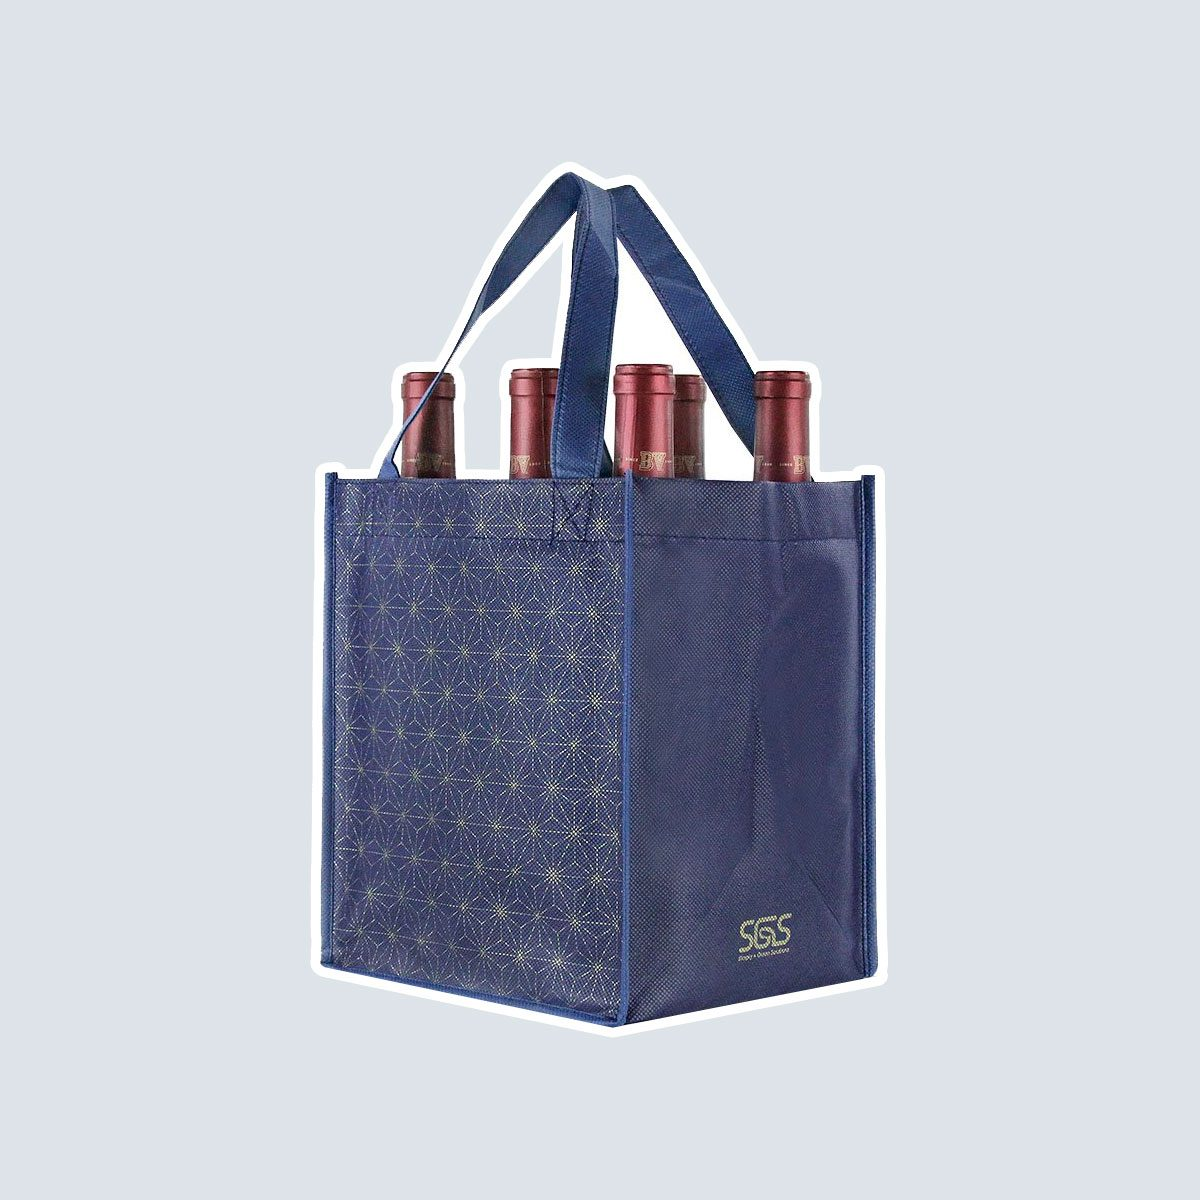 Reusable Wine Tote Bags